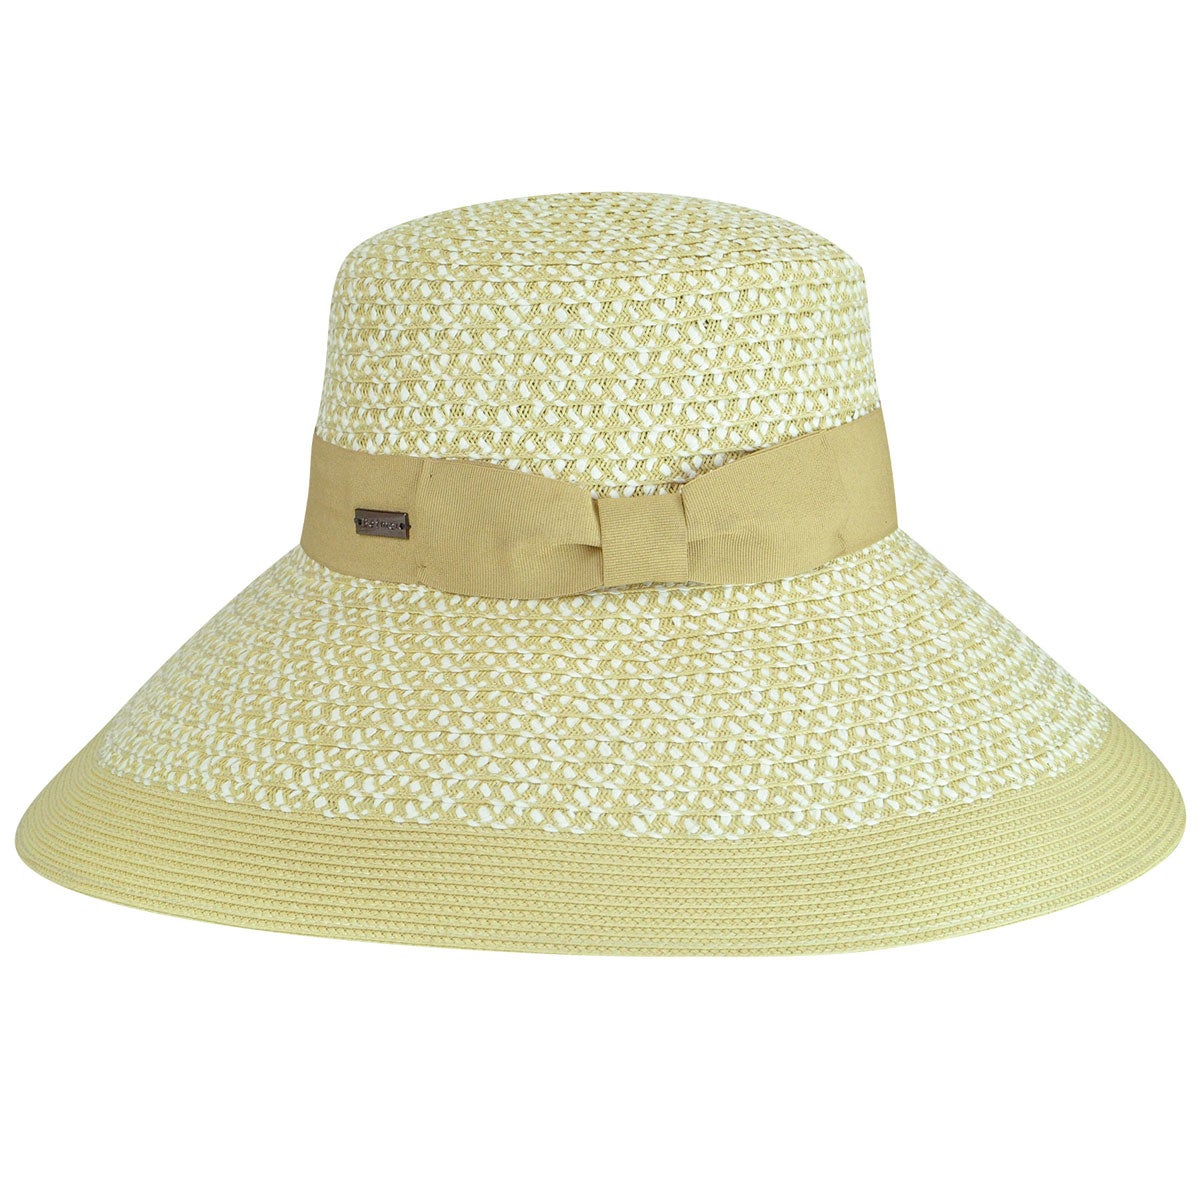 Betmar Audrey Braided Wide Brim Hat in White,Natural